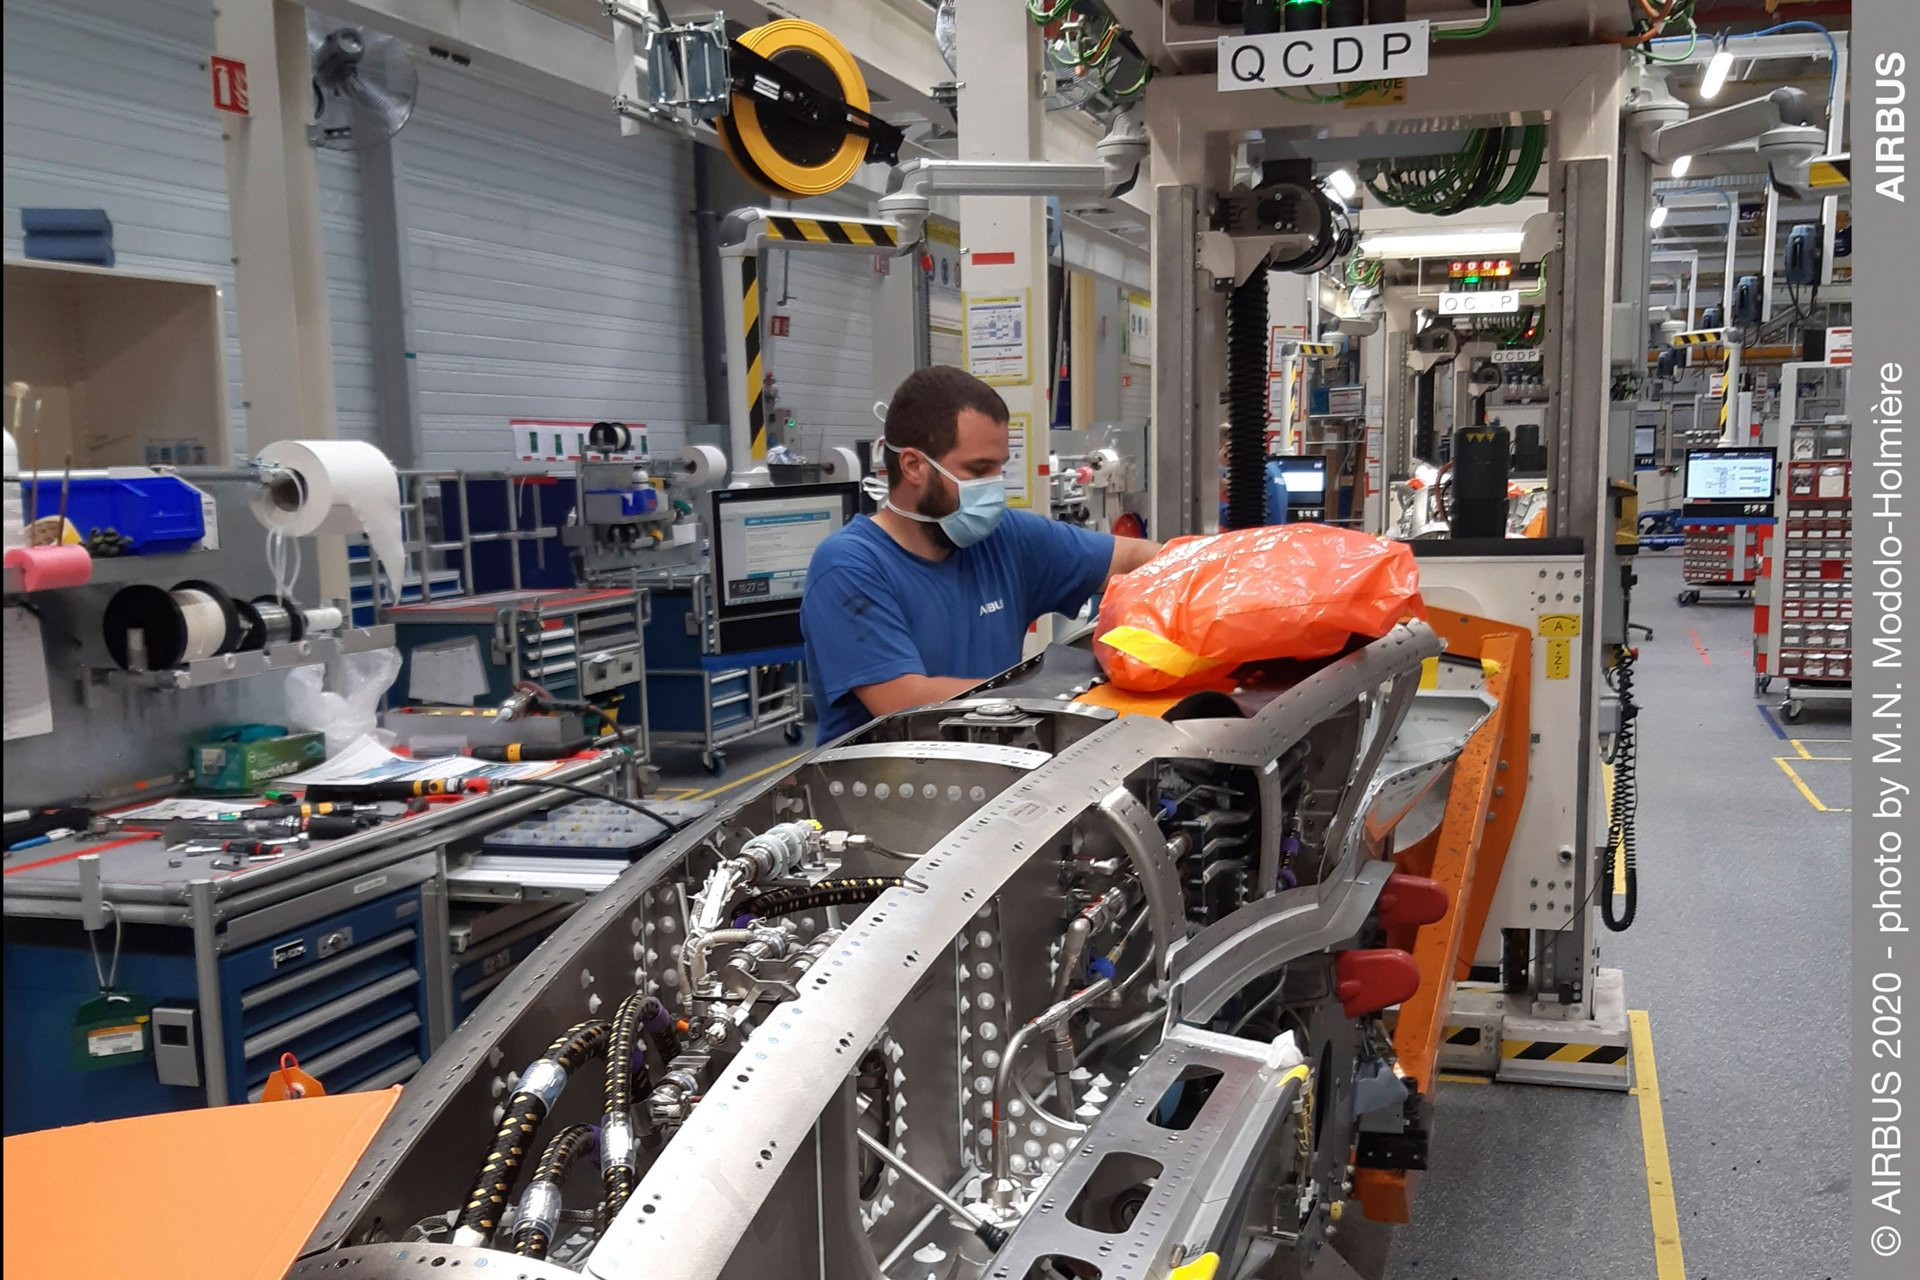 Operations have resumed at Airbus' Saint-Eloi factory, which manufactures pylons that integrate jet engines on the wings of all Airbus aircraft families